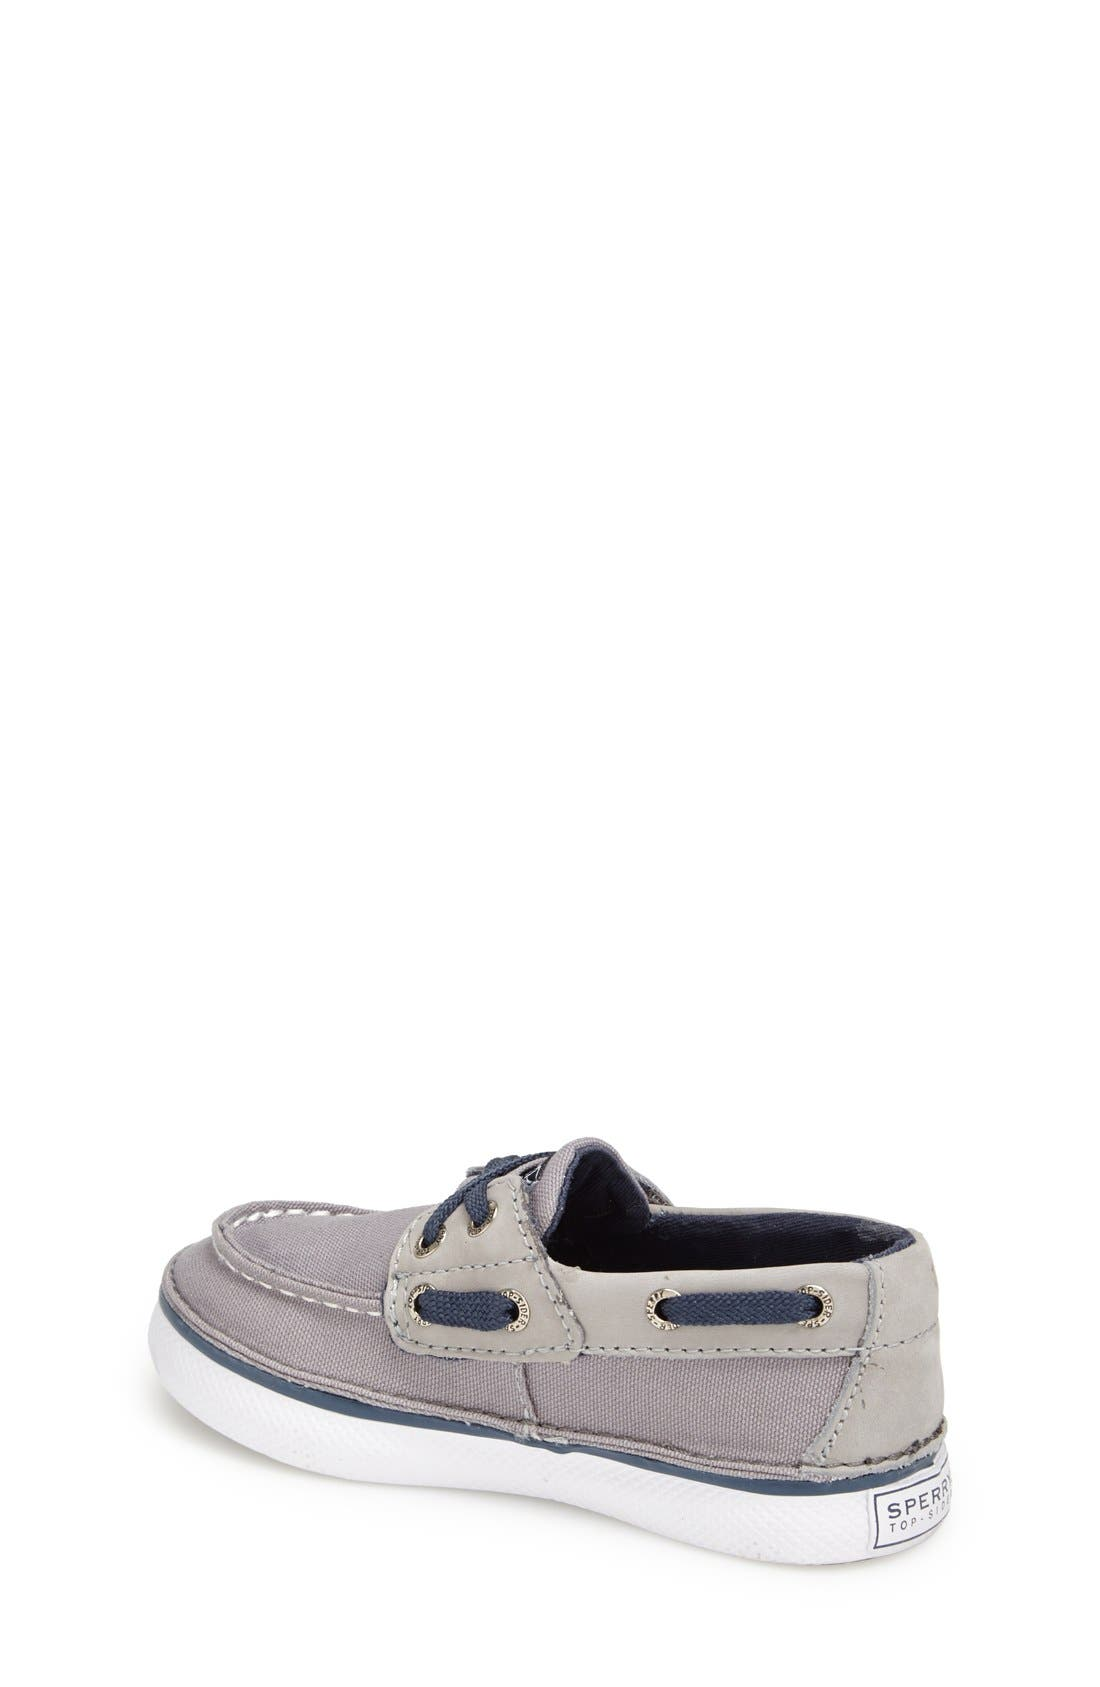 Alternate Image 2  - Sperry Kids 'Cruz Jr.' Slip-On Boat Shoe (Walker & Toddler)